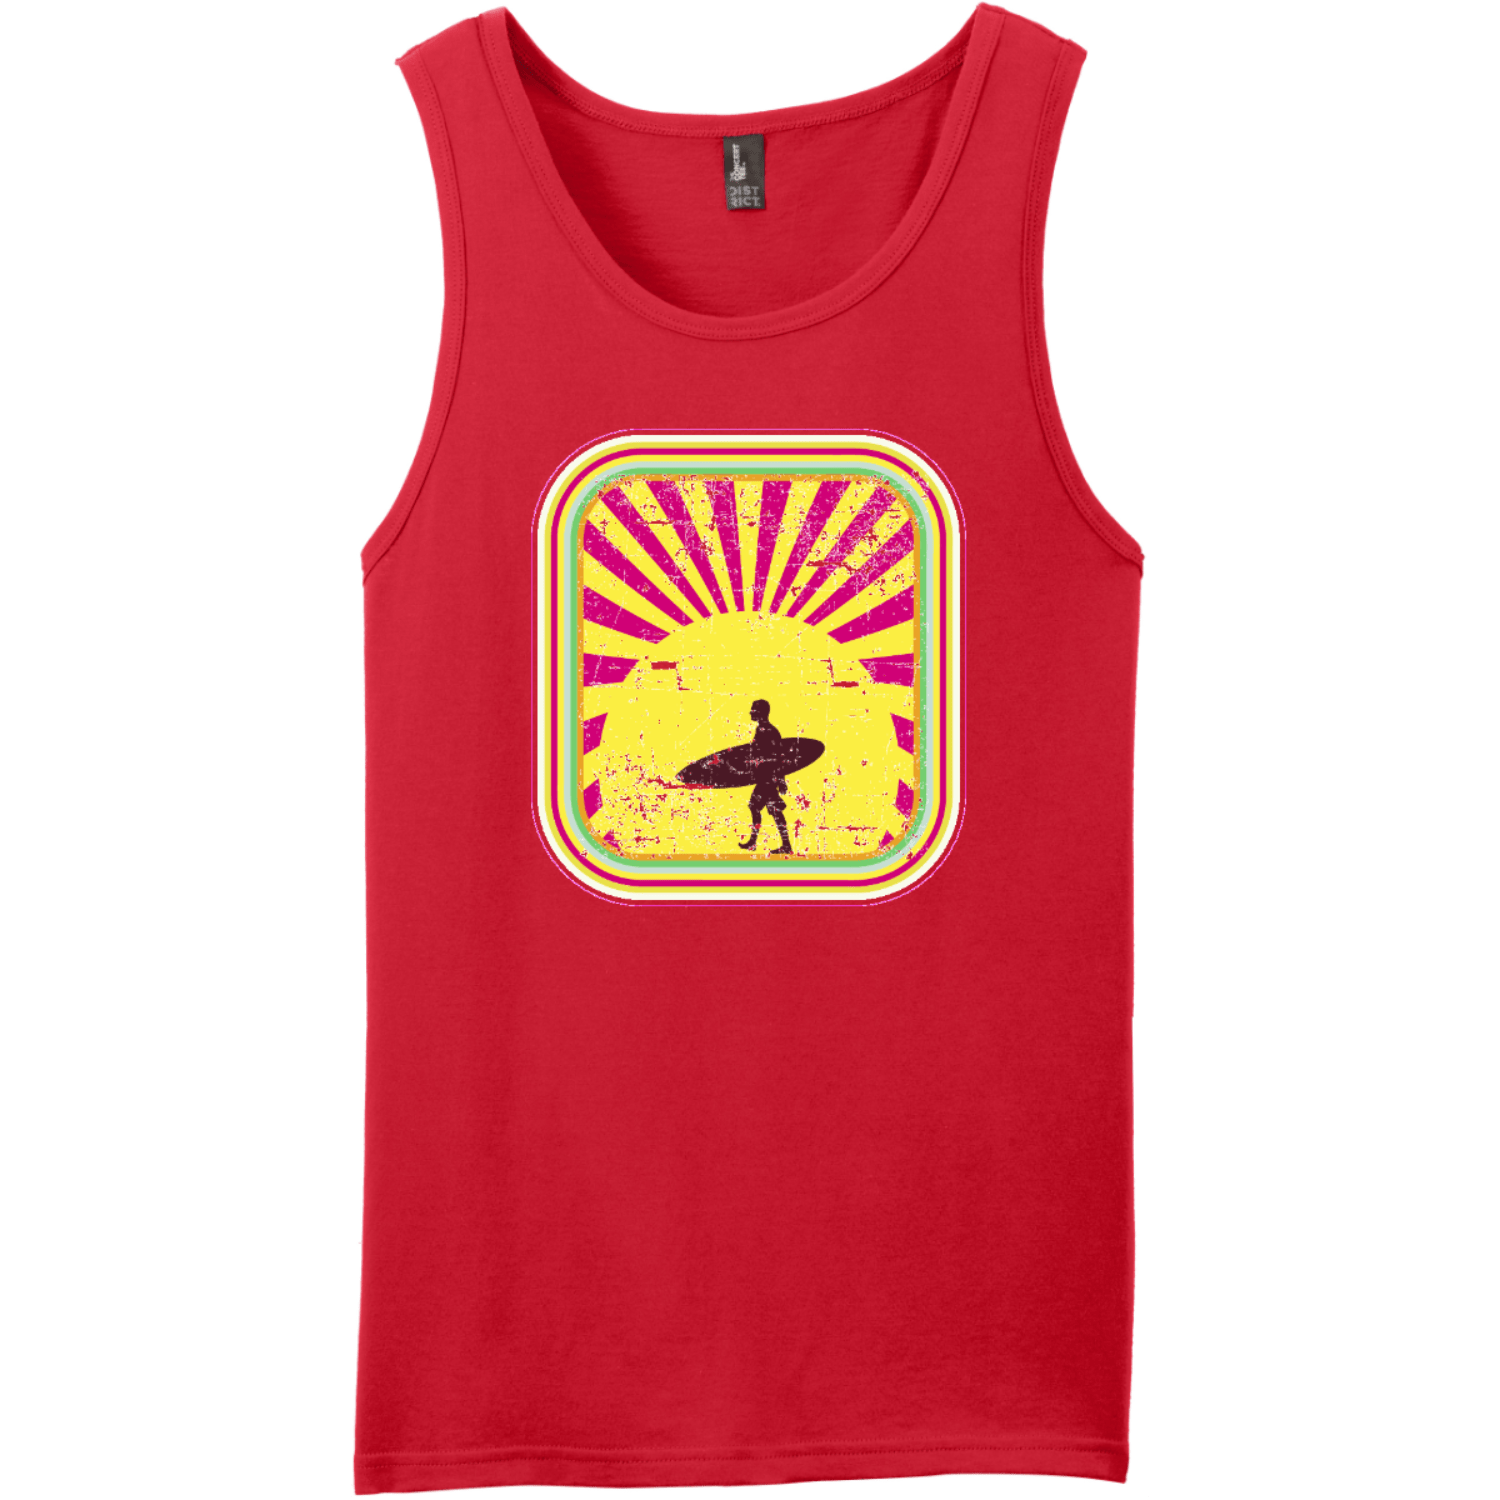 Surfer In The Retro Sunset Tank Top New Red District Concert Tank Top DT5300